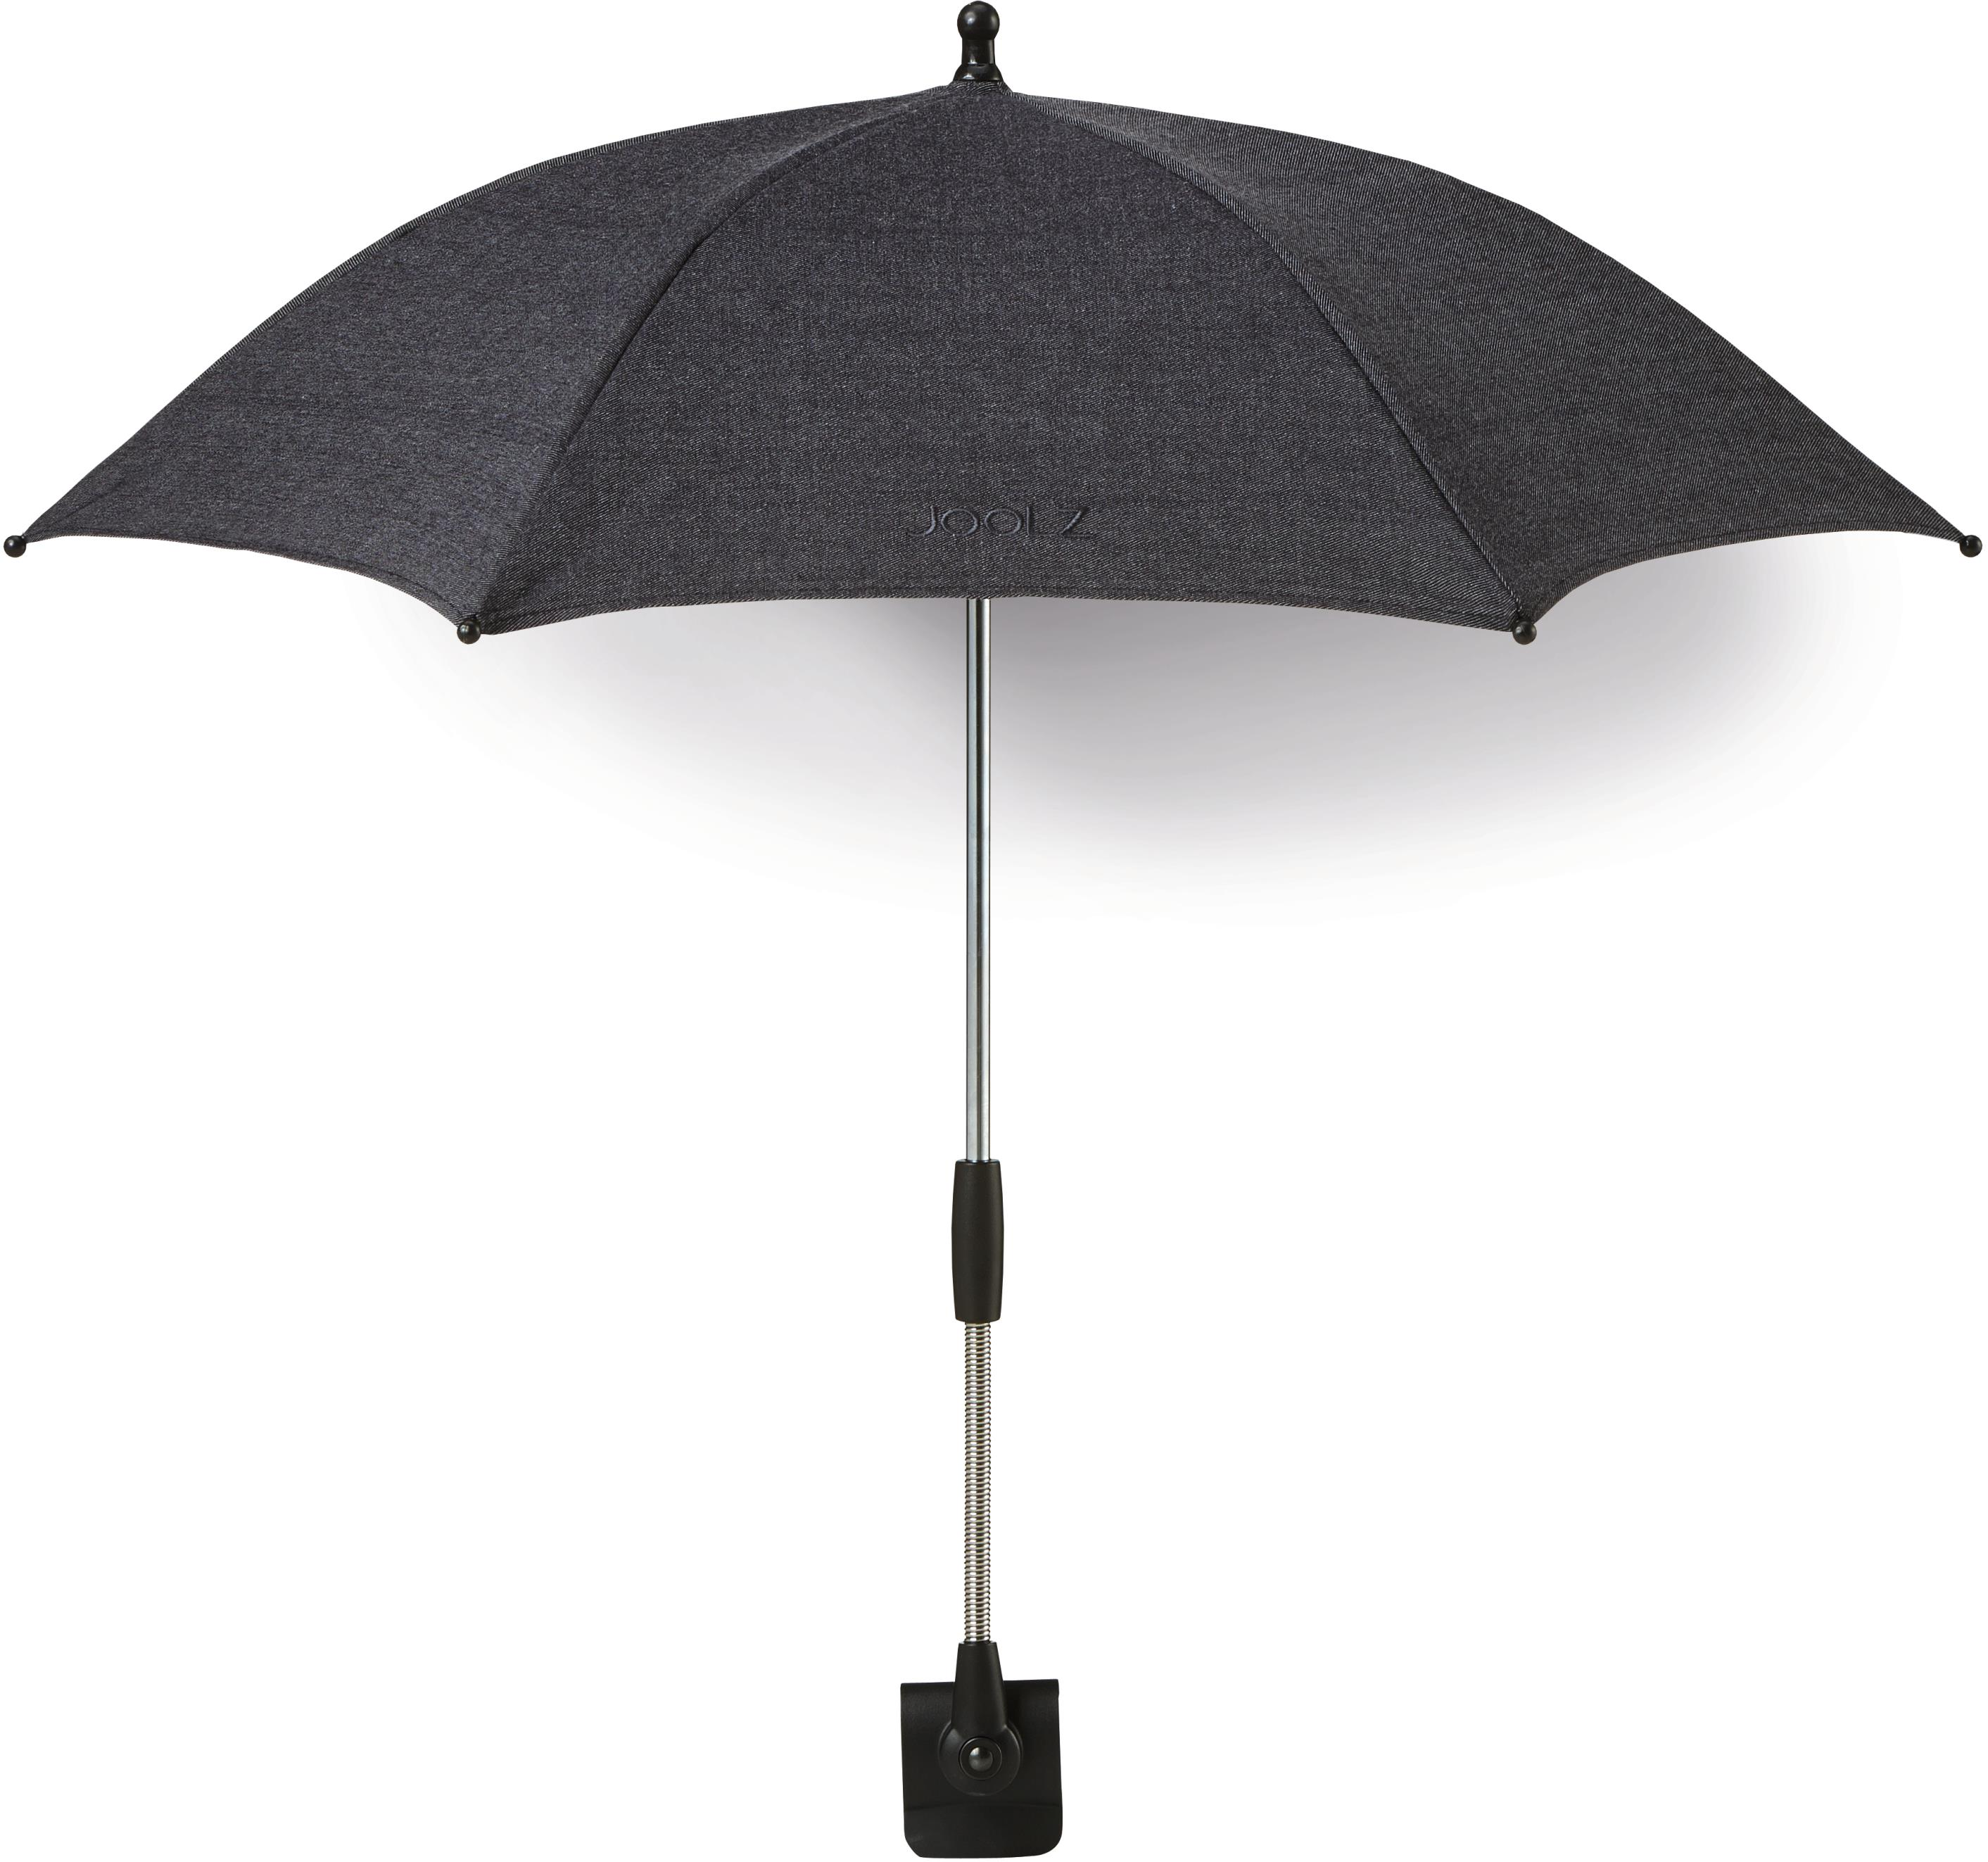 Joolz Day Quadro parasol - denim